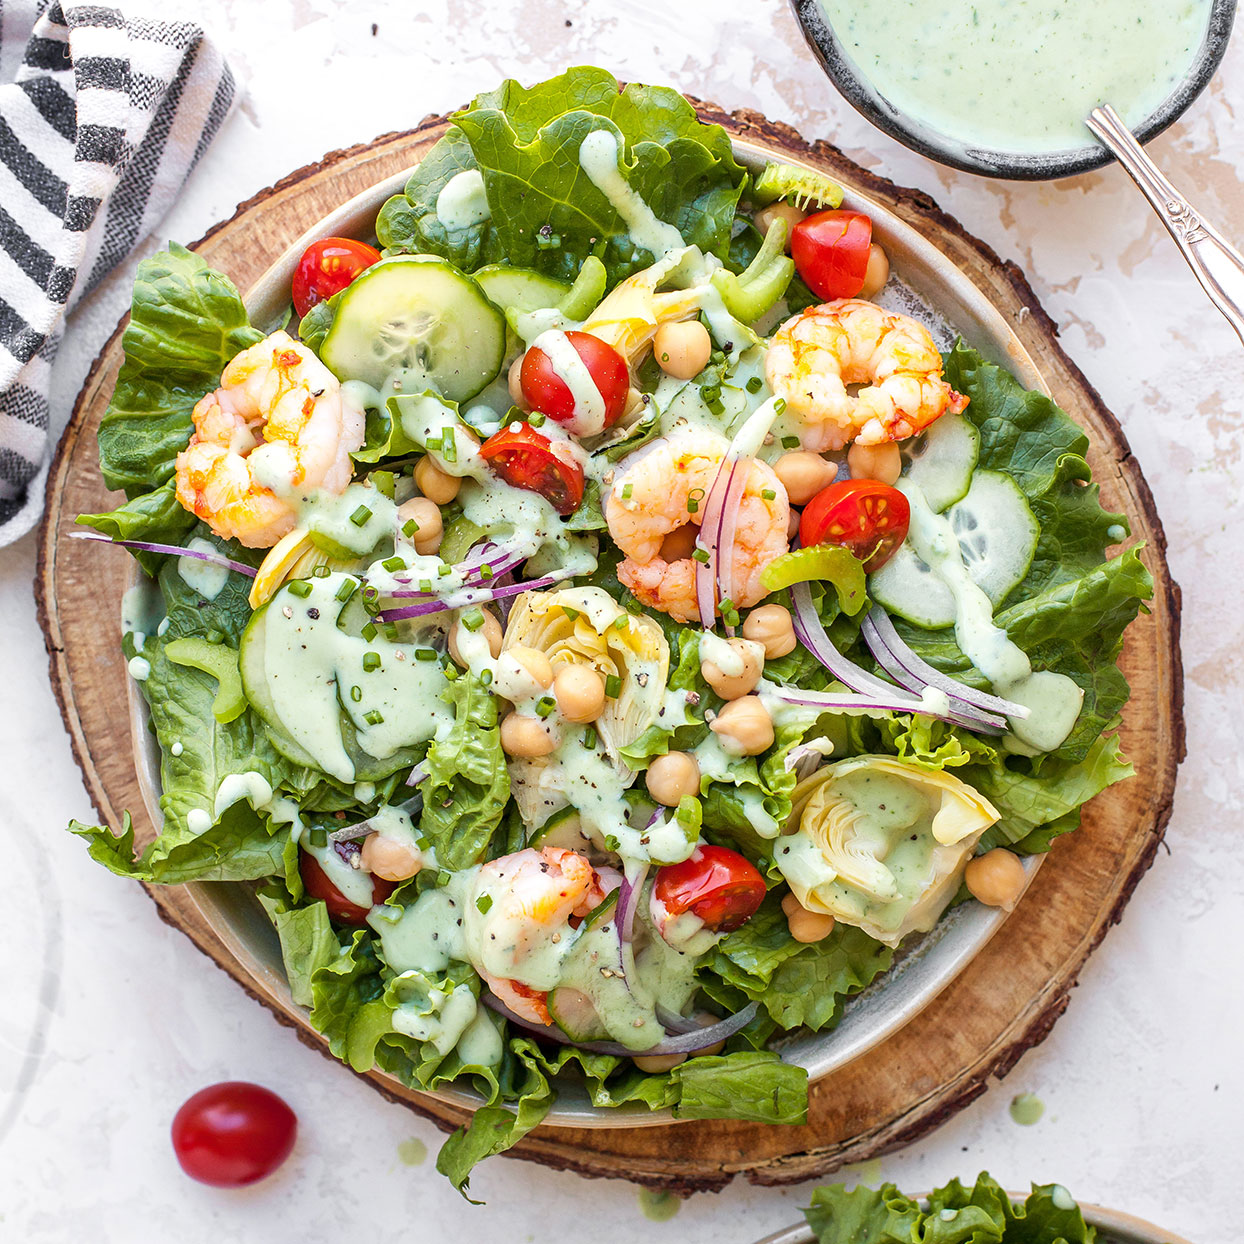 This gorgeous salad combines fresh shrimp, cucumber, artichoke hearts and cherry tomatoes with homemade green goddess dressing. The dressing is beautifully green and creamy with avocado (loaded with good-for-you fats) and fresh herbs. Buttermilk and a dash of rice vinegar add tang.